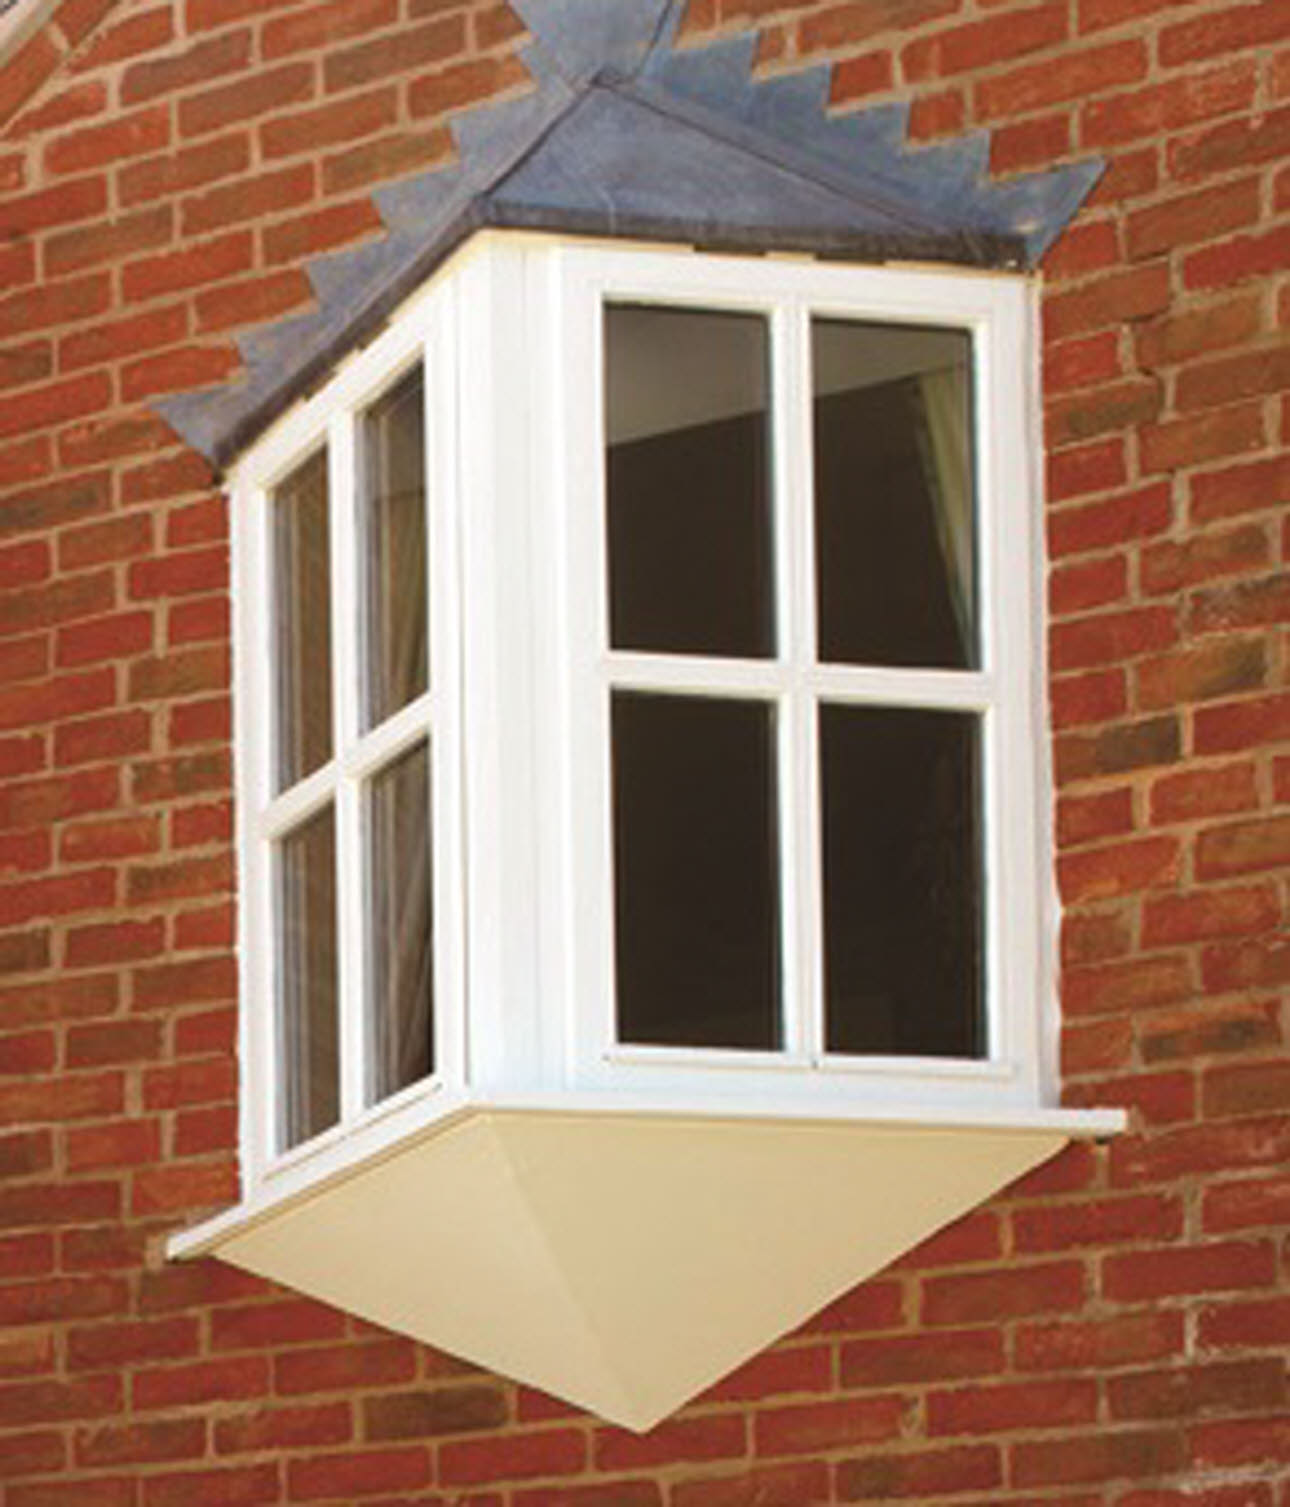 JELD-WEN Oriel Bay Timber Window